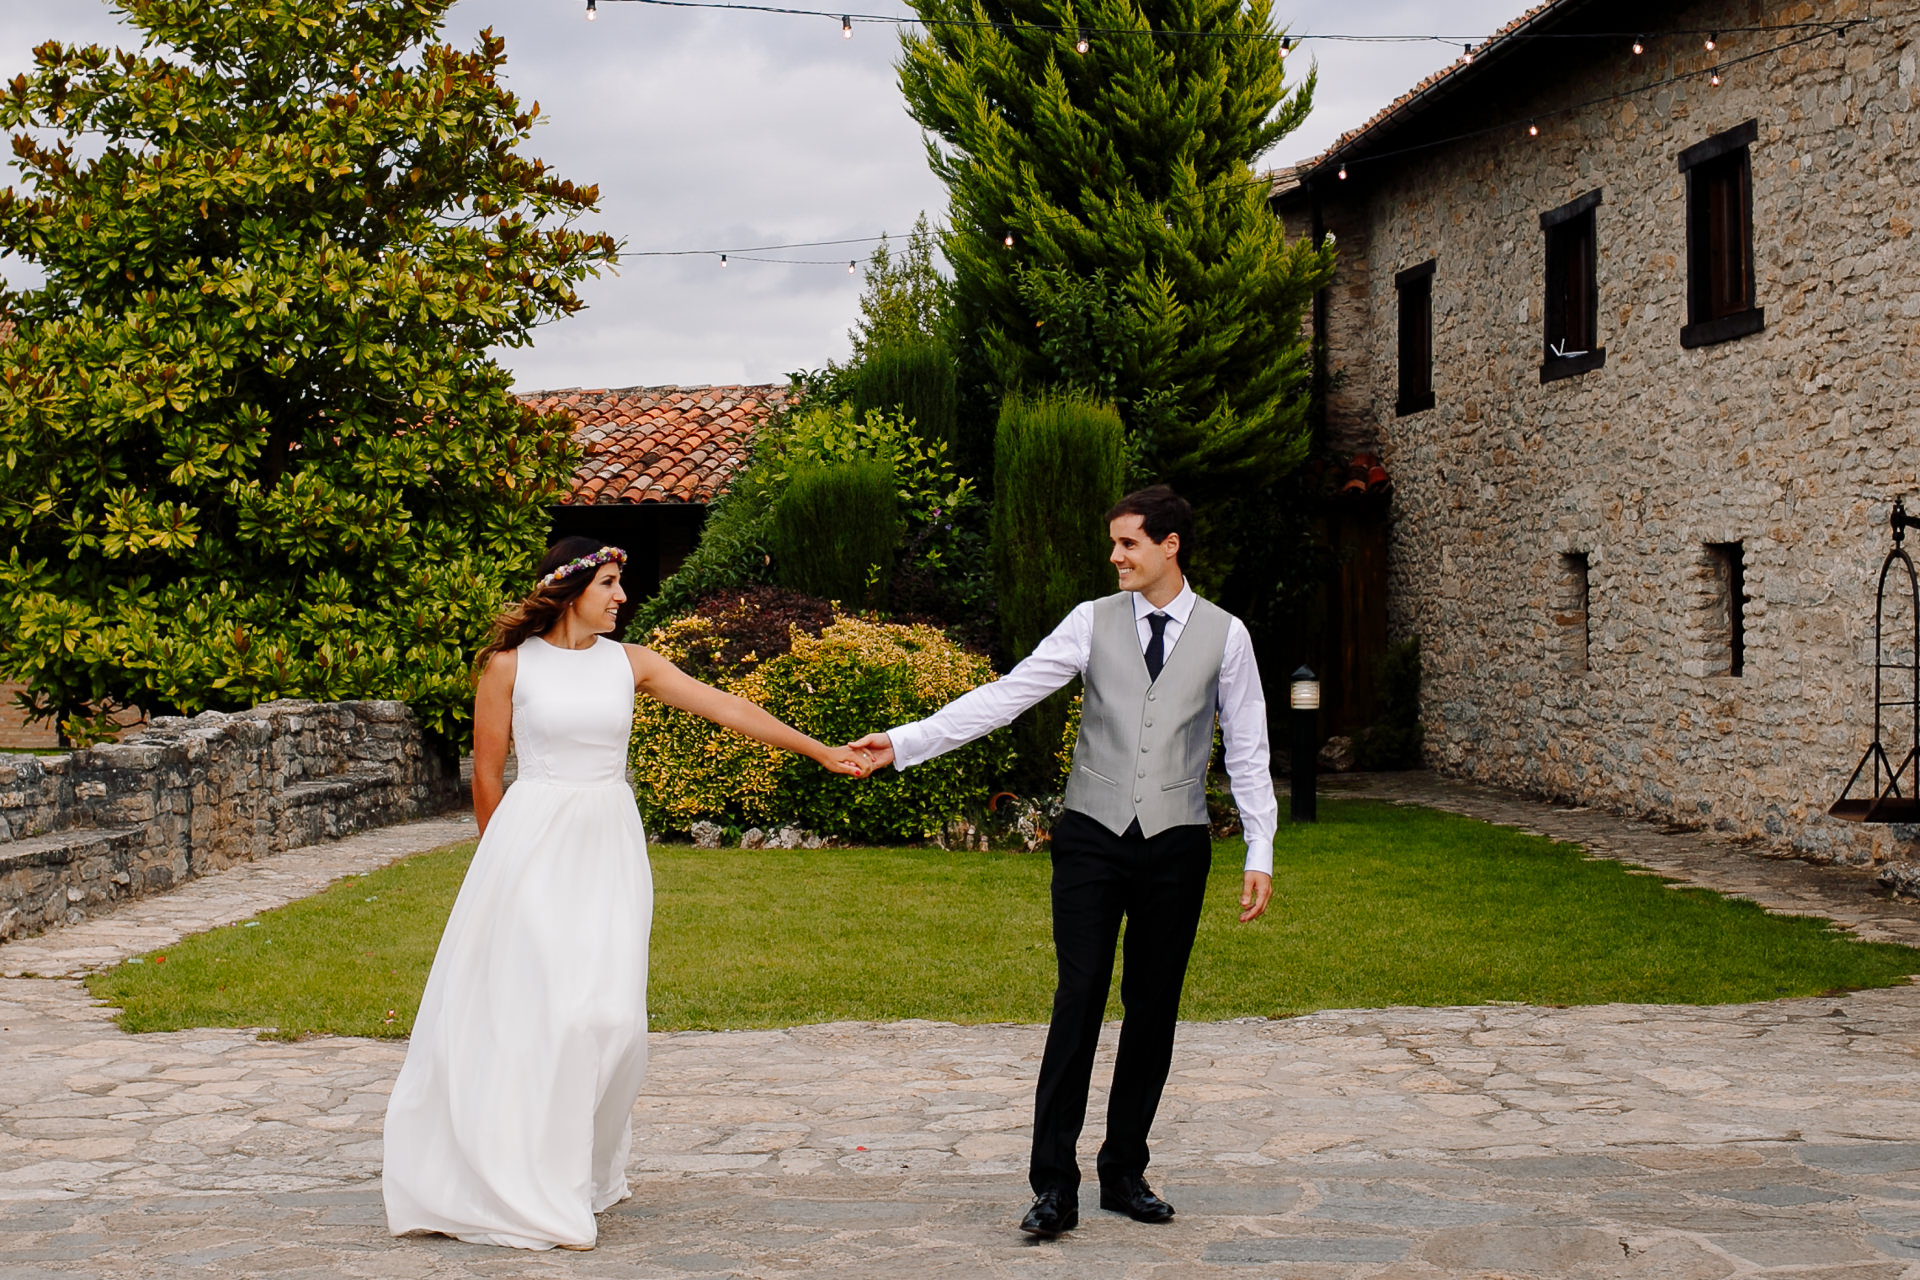 boda civil palacio elorriaga 185302